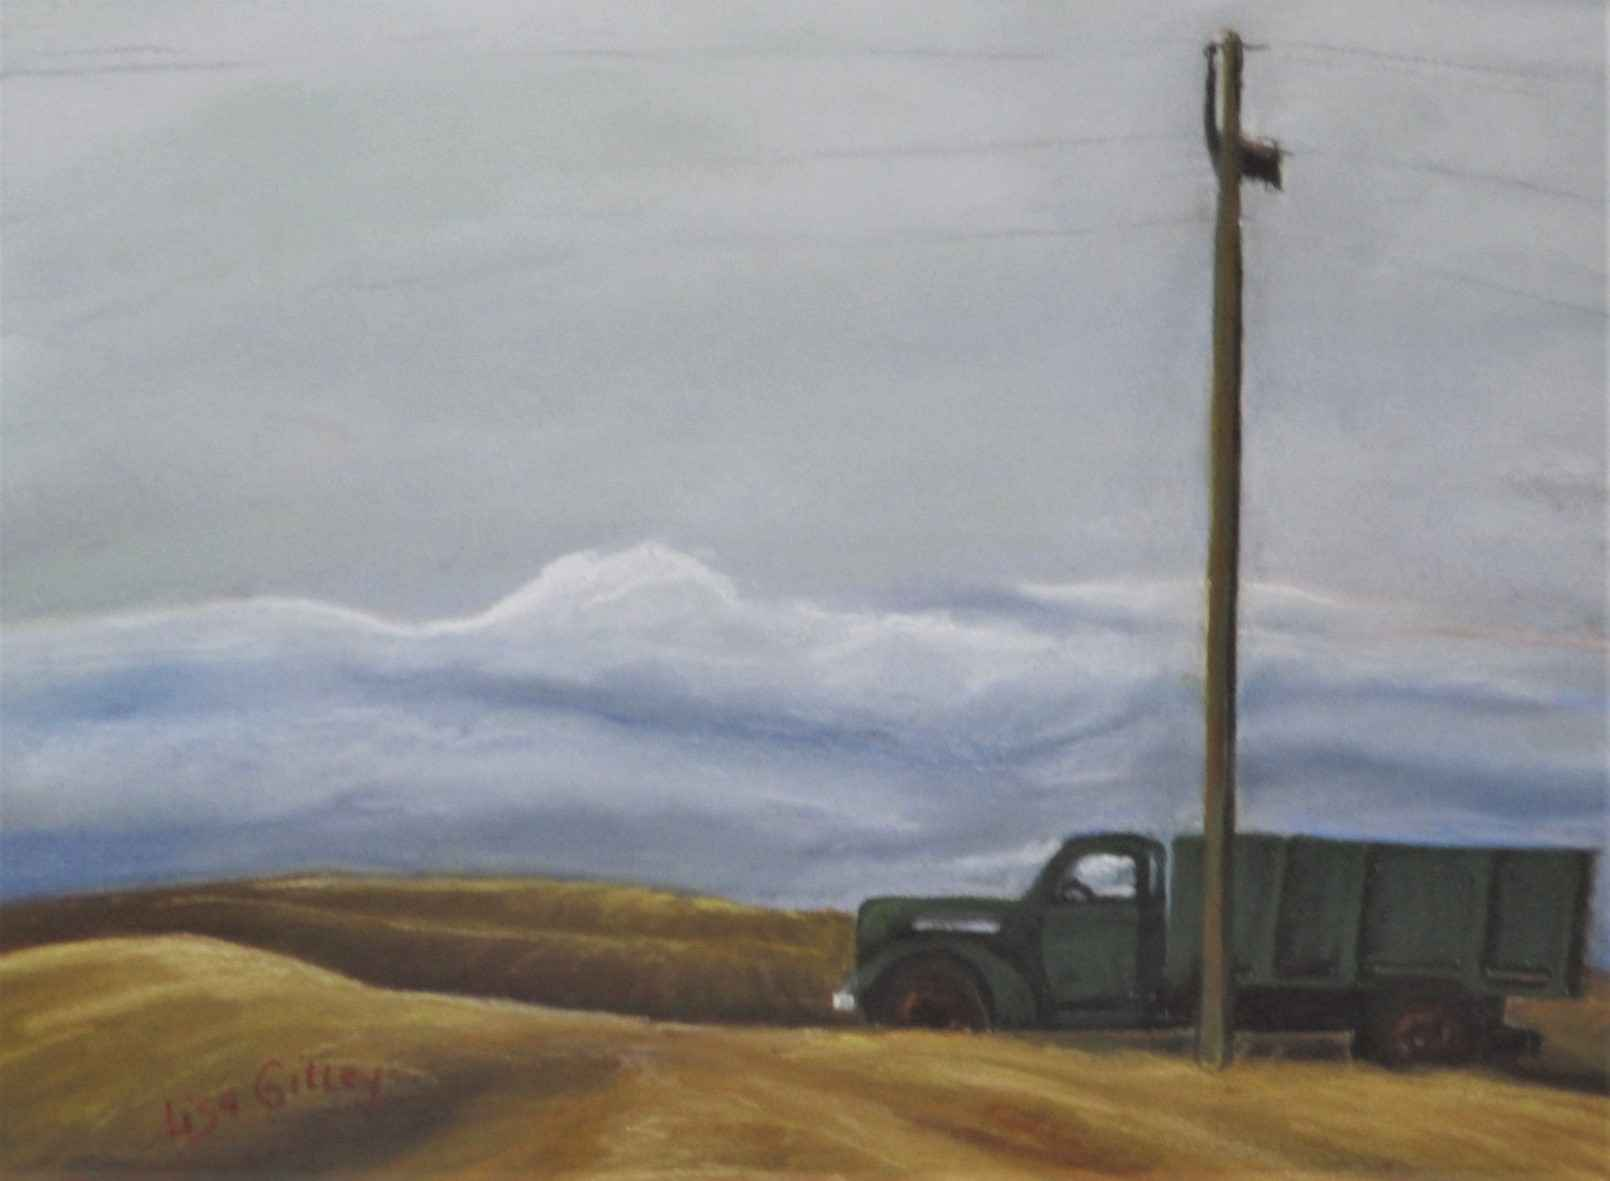 Todd O's Truck by  Lisa Gilley - Masterpiece Online